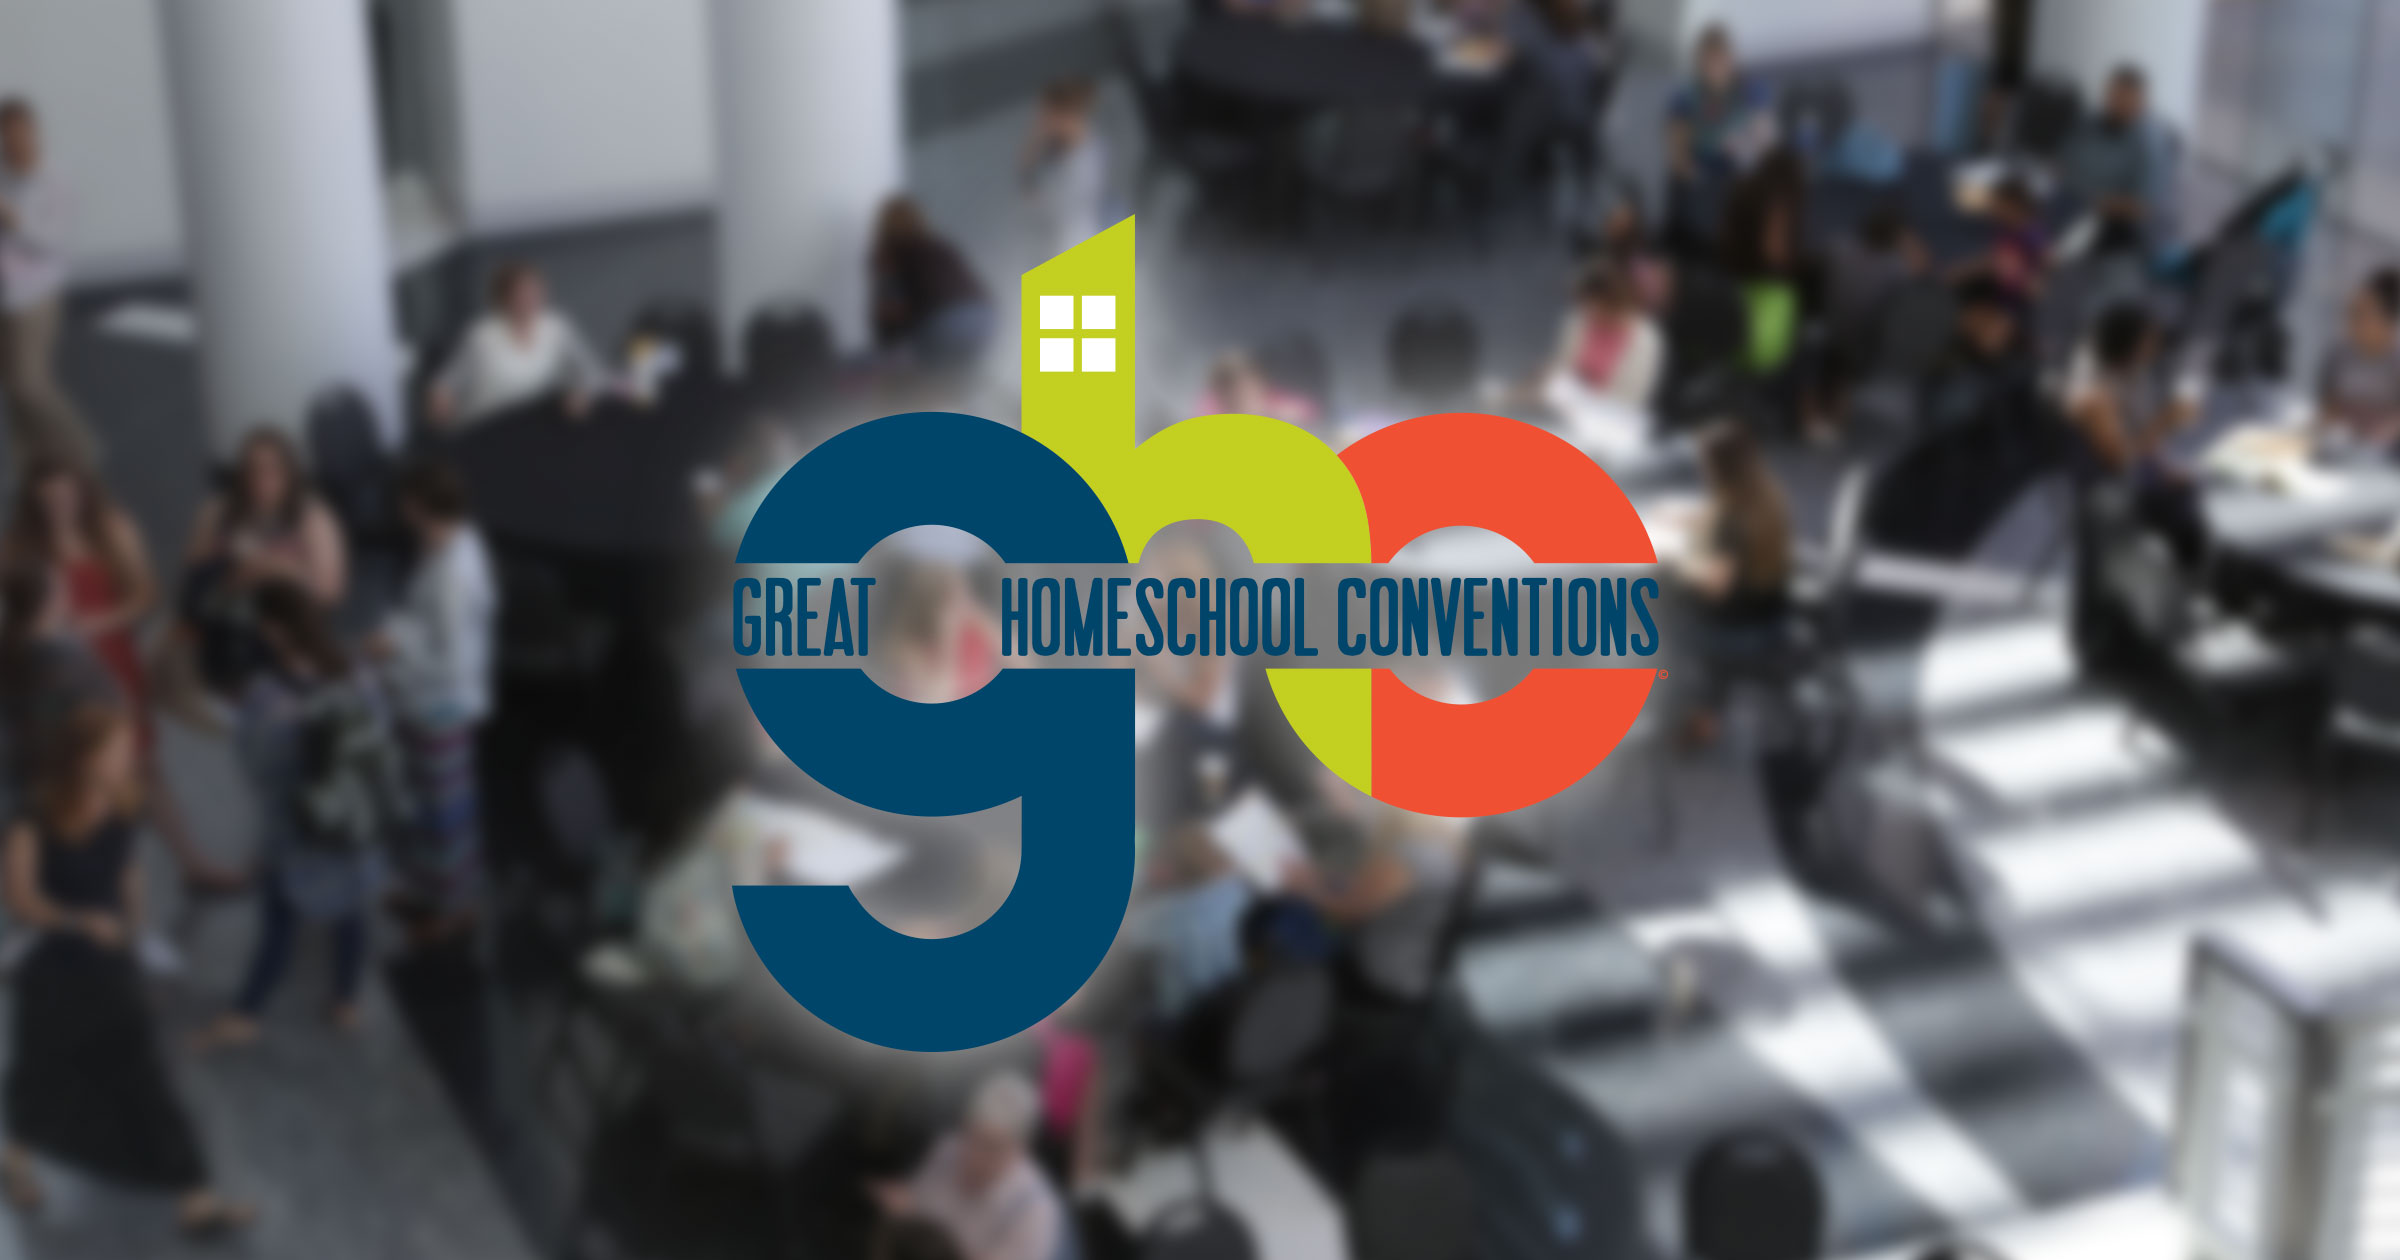 Great Homeschool Conventions Site